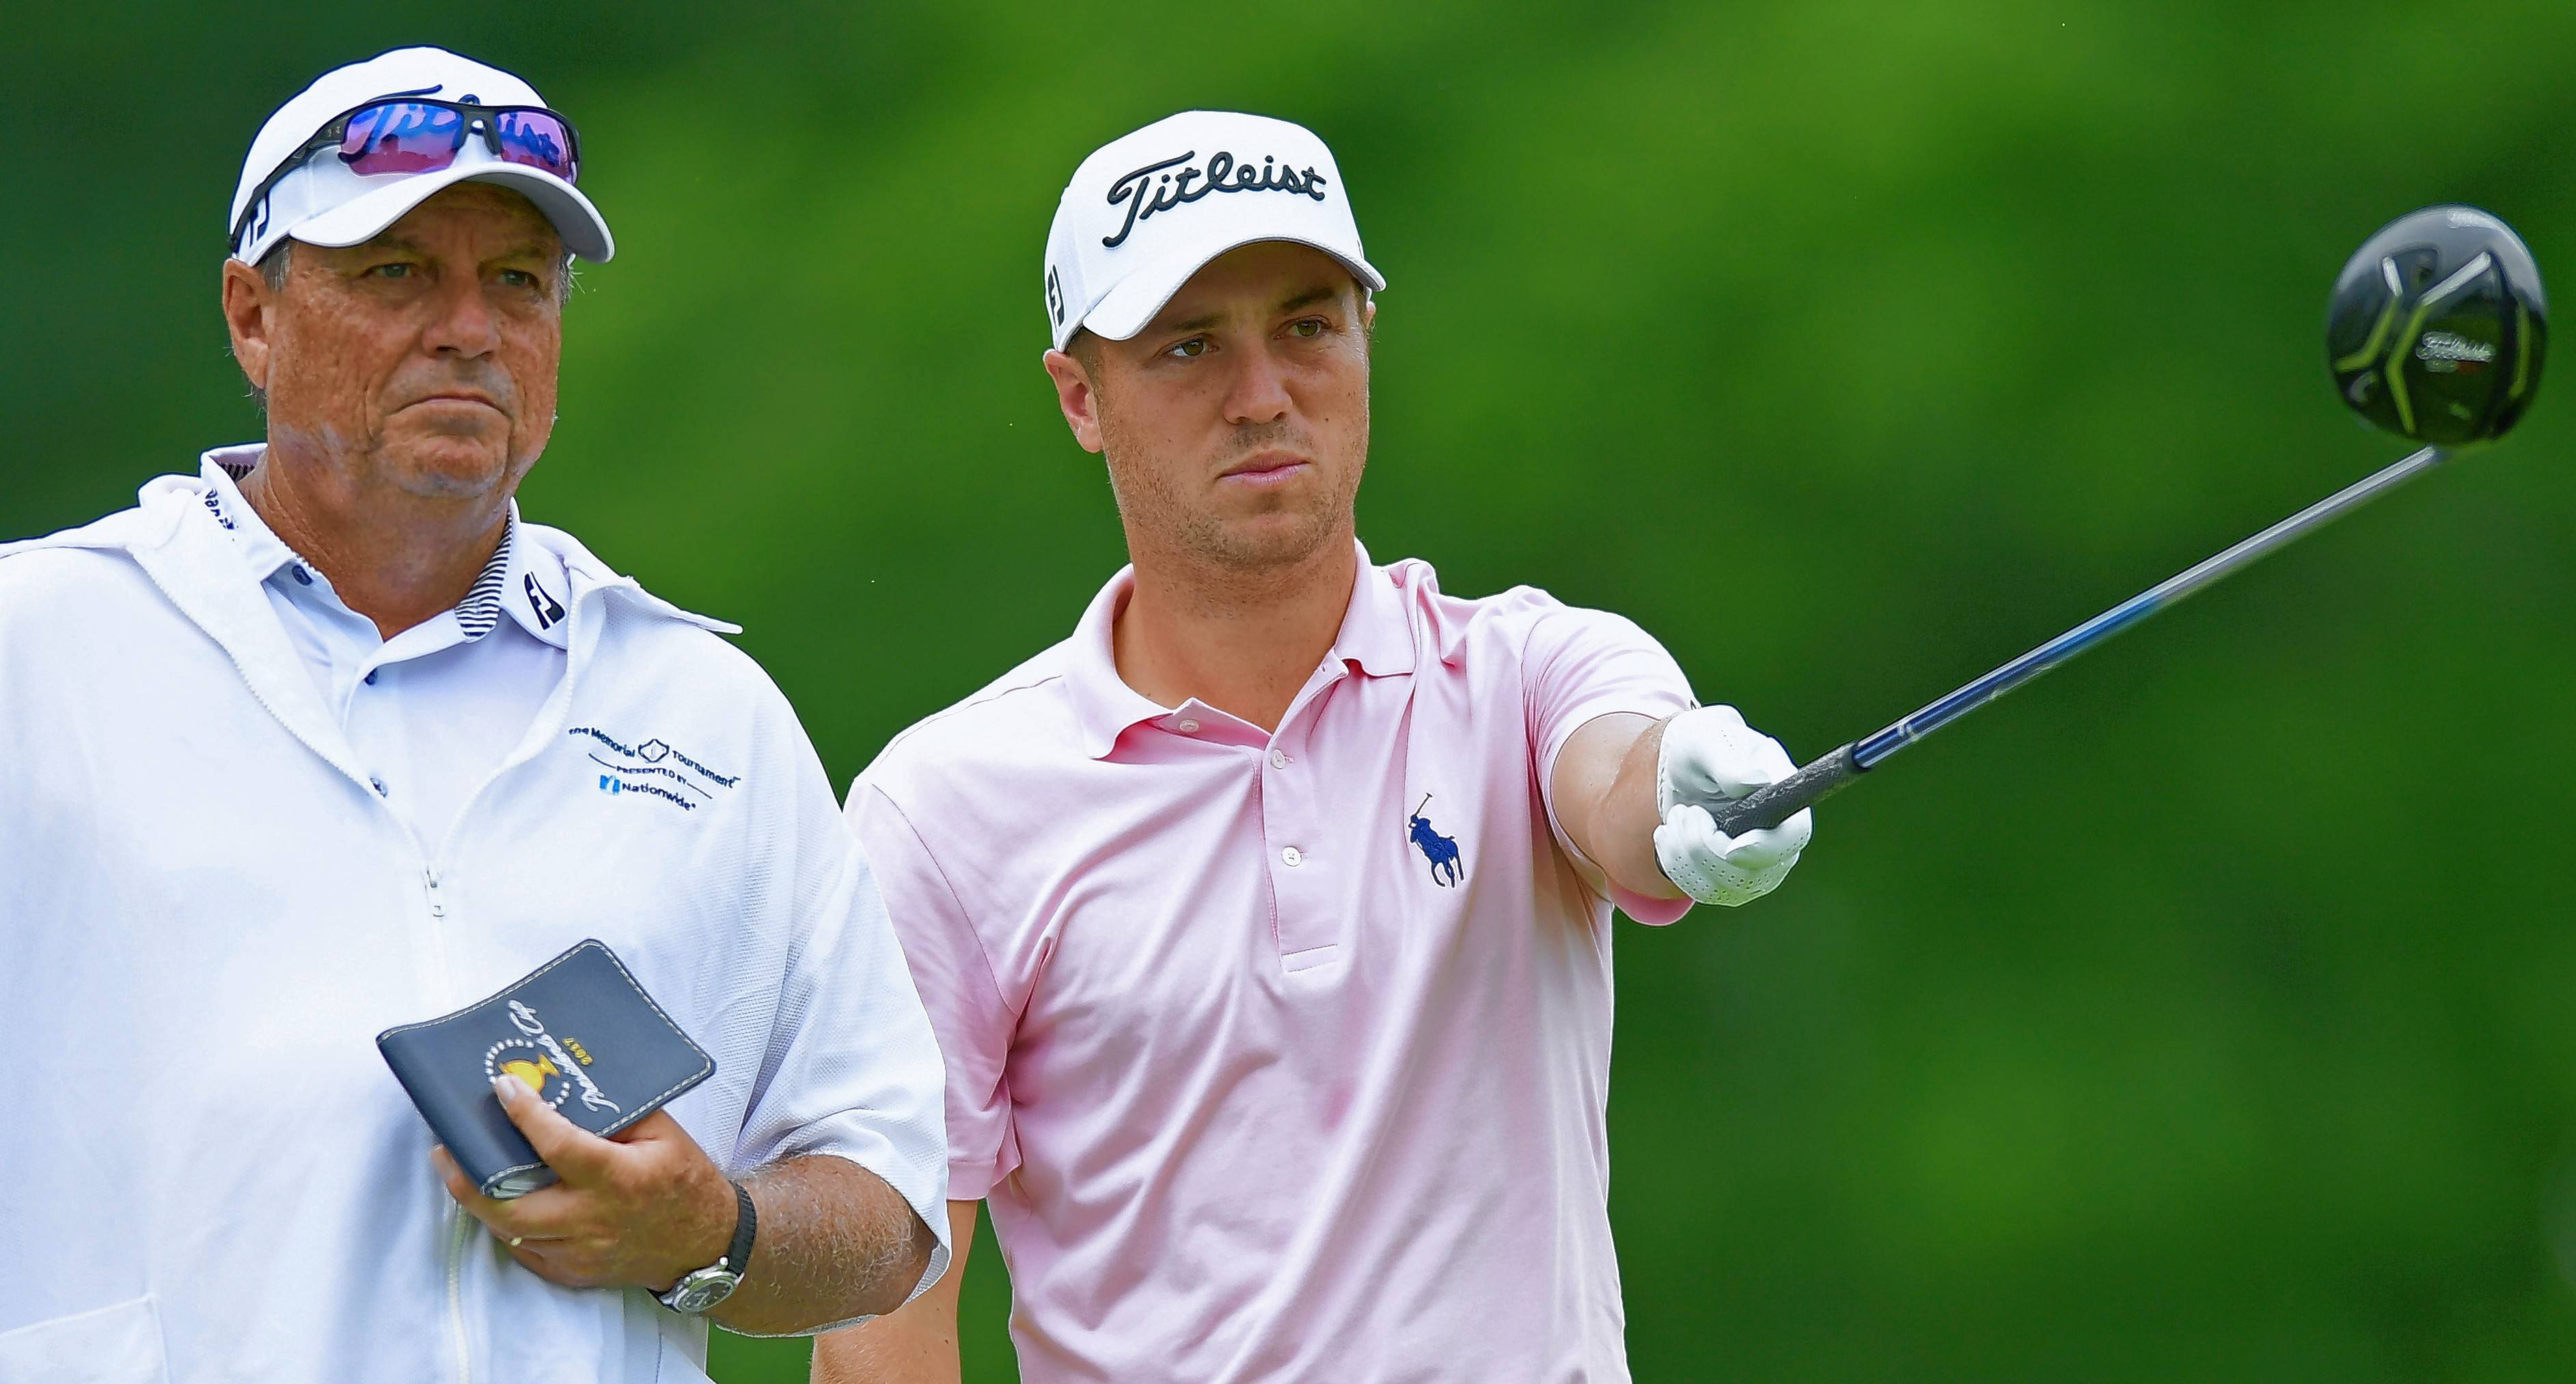 Justin Thomas, right, and his caddie, Jimmy Johnson, examine the fair way on the 18th hole during the third round of the Memorial golf tournament Saturday, June 2, 2018, in Dublin, Ohio.